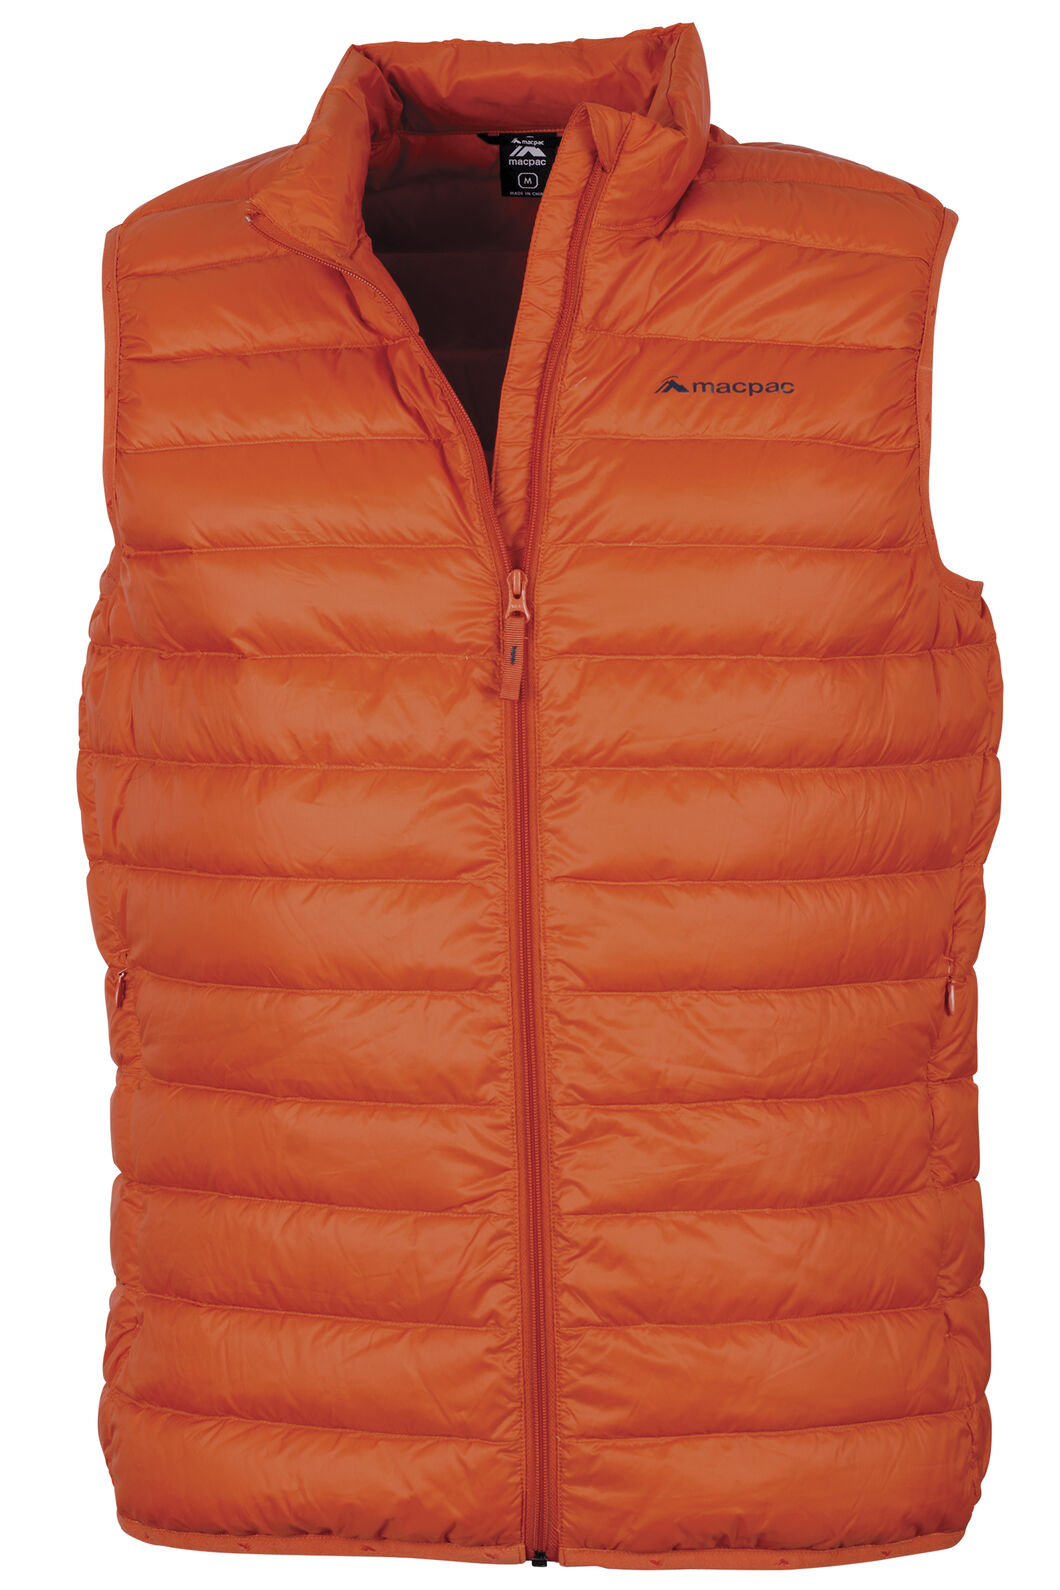 Macpac Uber Light Down Vest - Men's, Sunset, hi-res